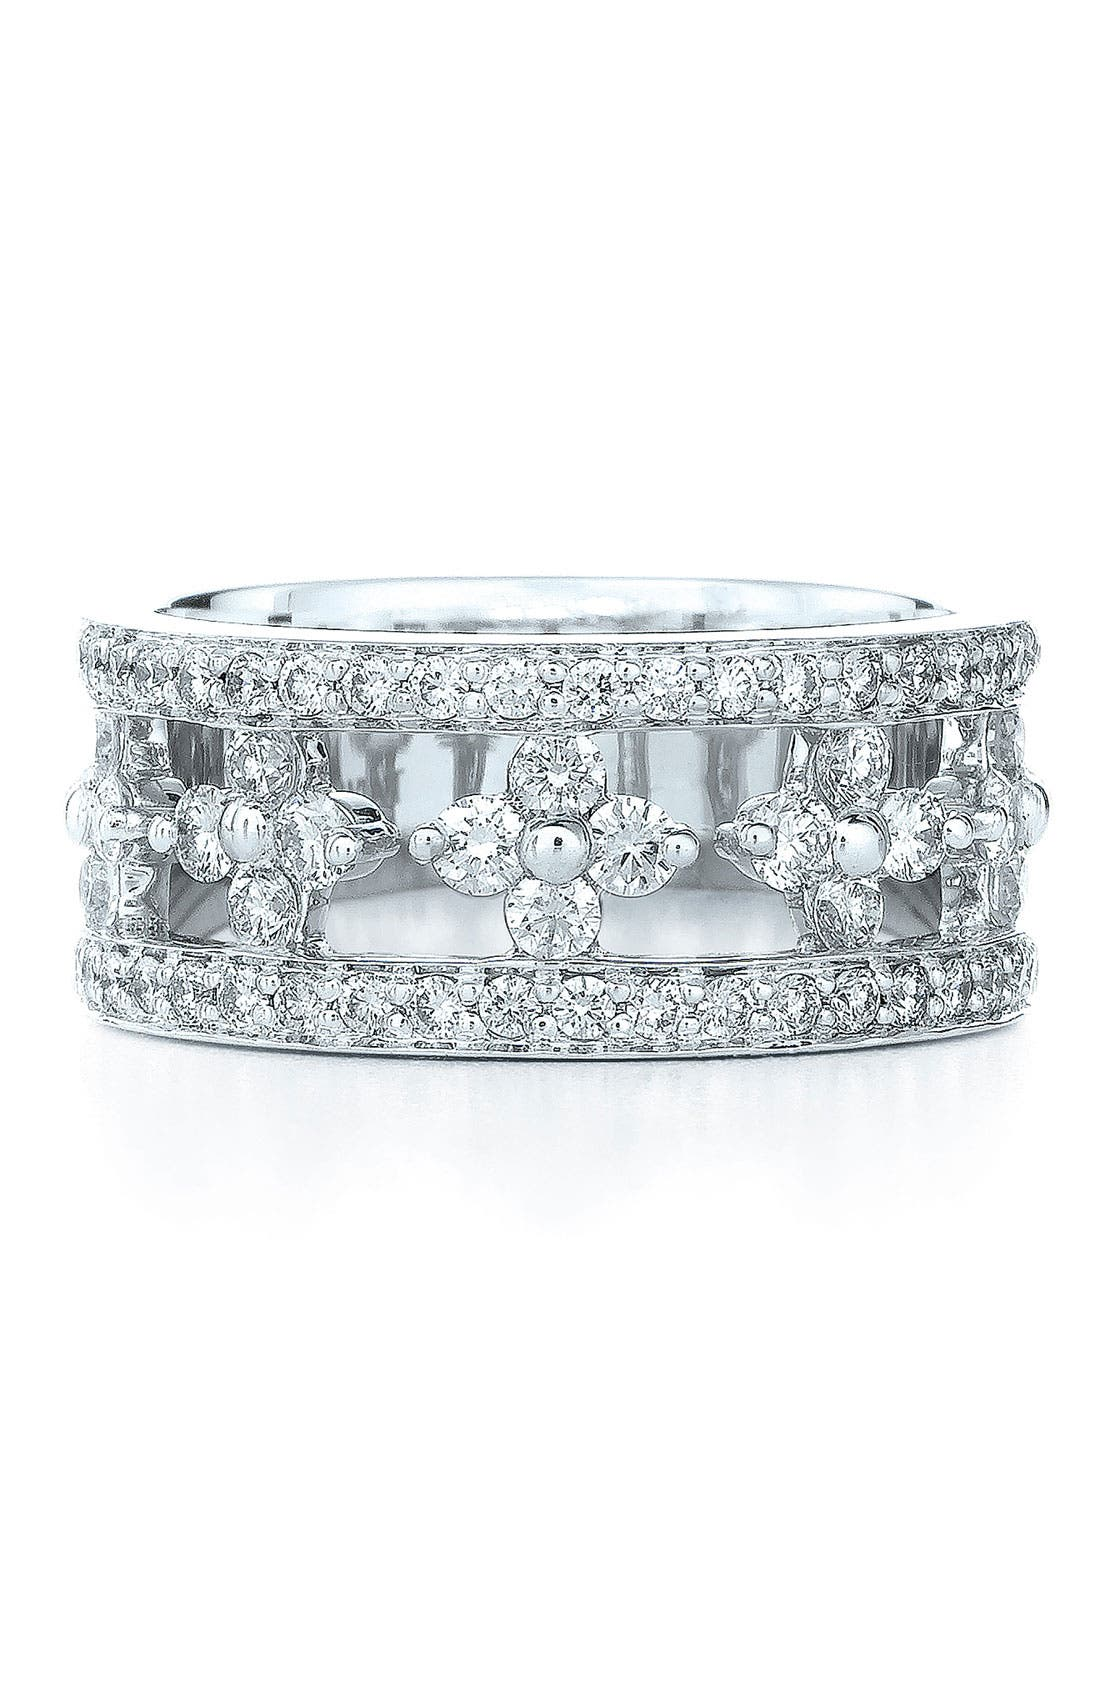 Alternate Image 1 Selected - Kwiat 'Jasmine' Floral White Gold & Diamond Ring